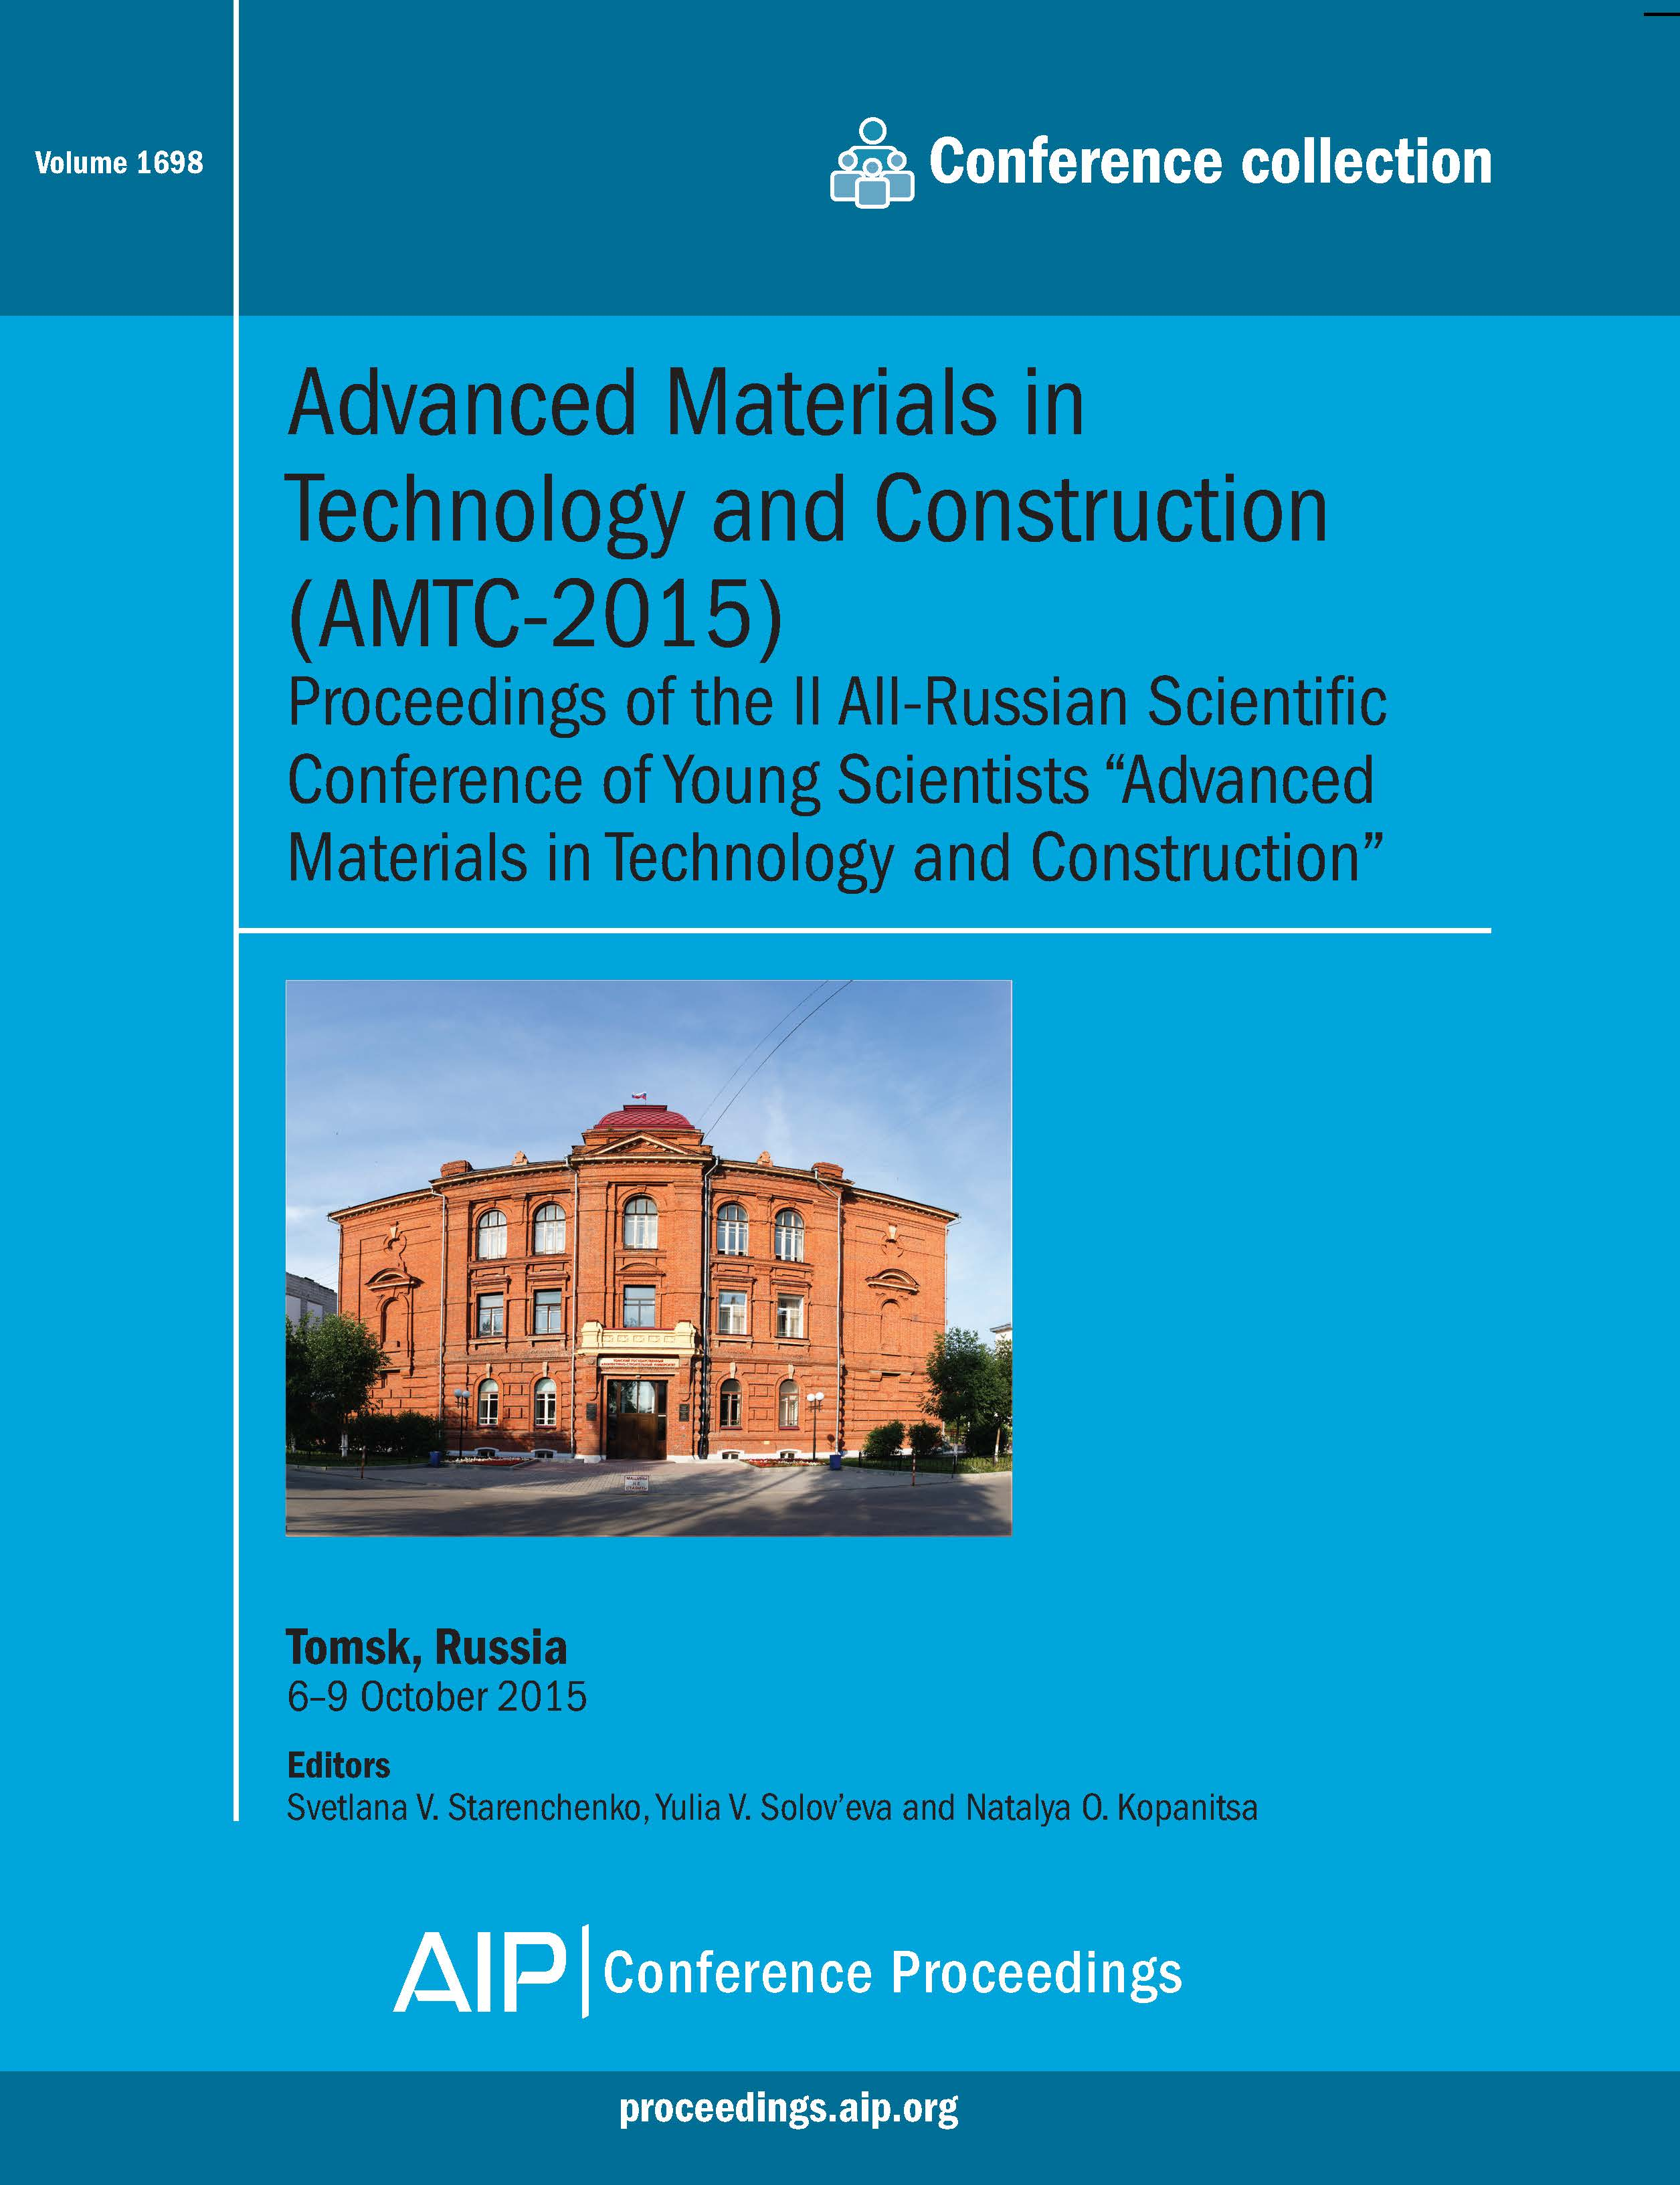 Volume 1698: Advanced Materials in Technology and Construction (AMTC